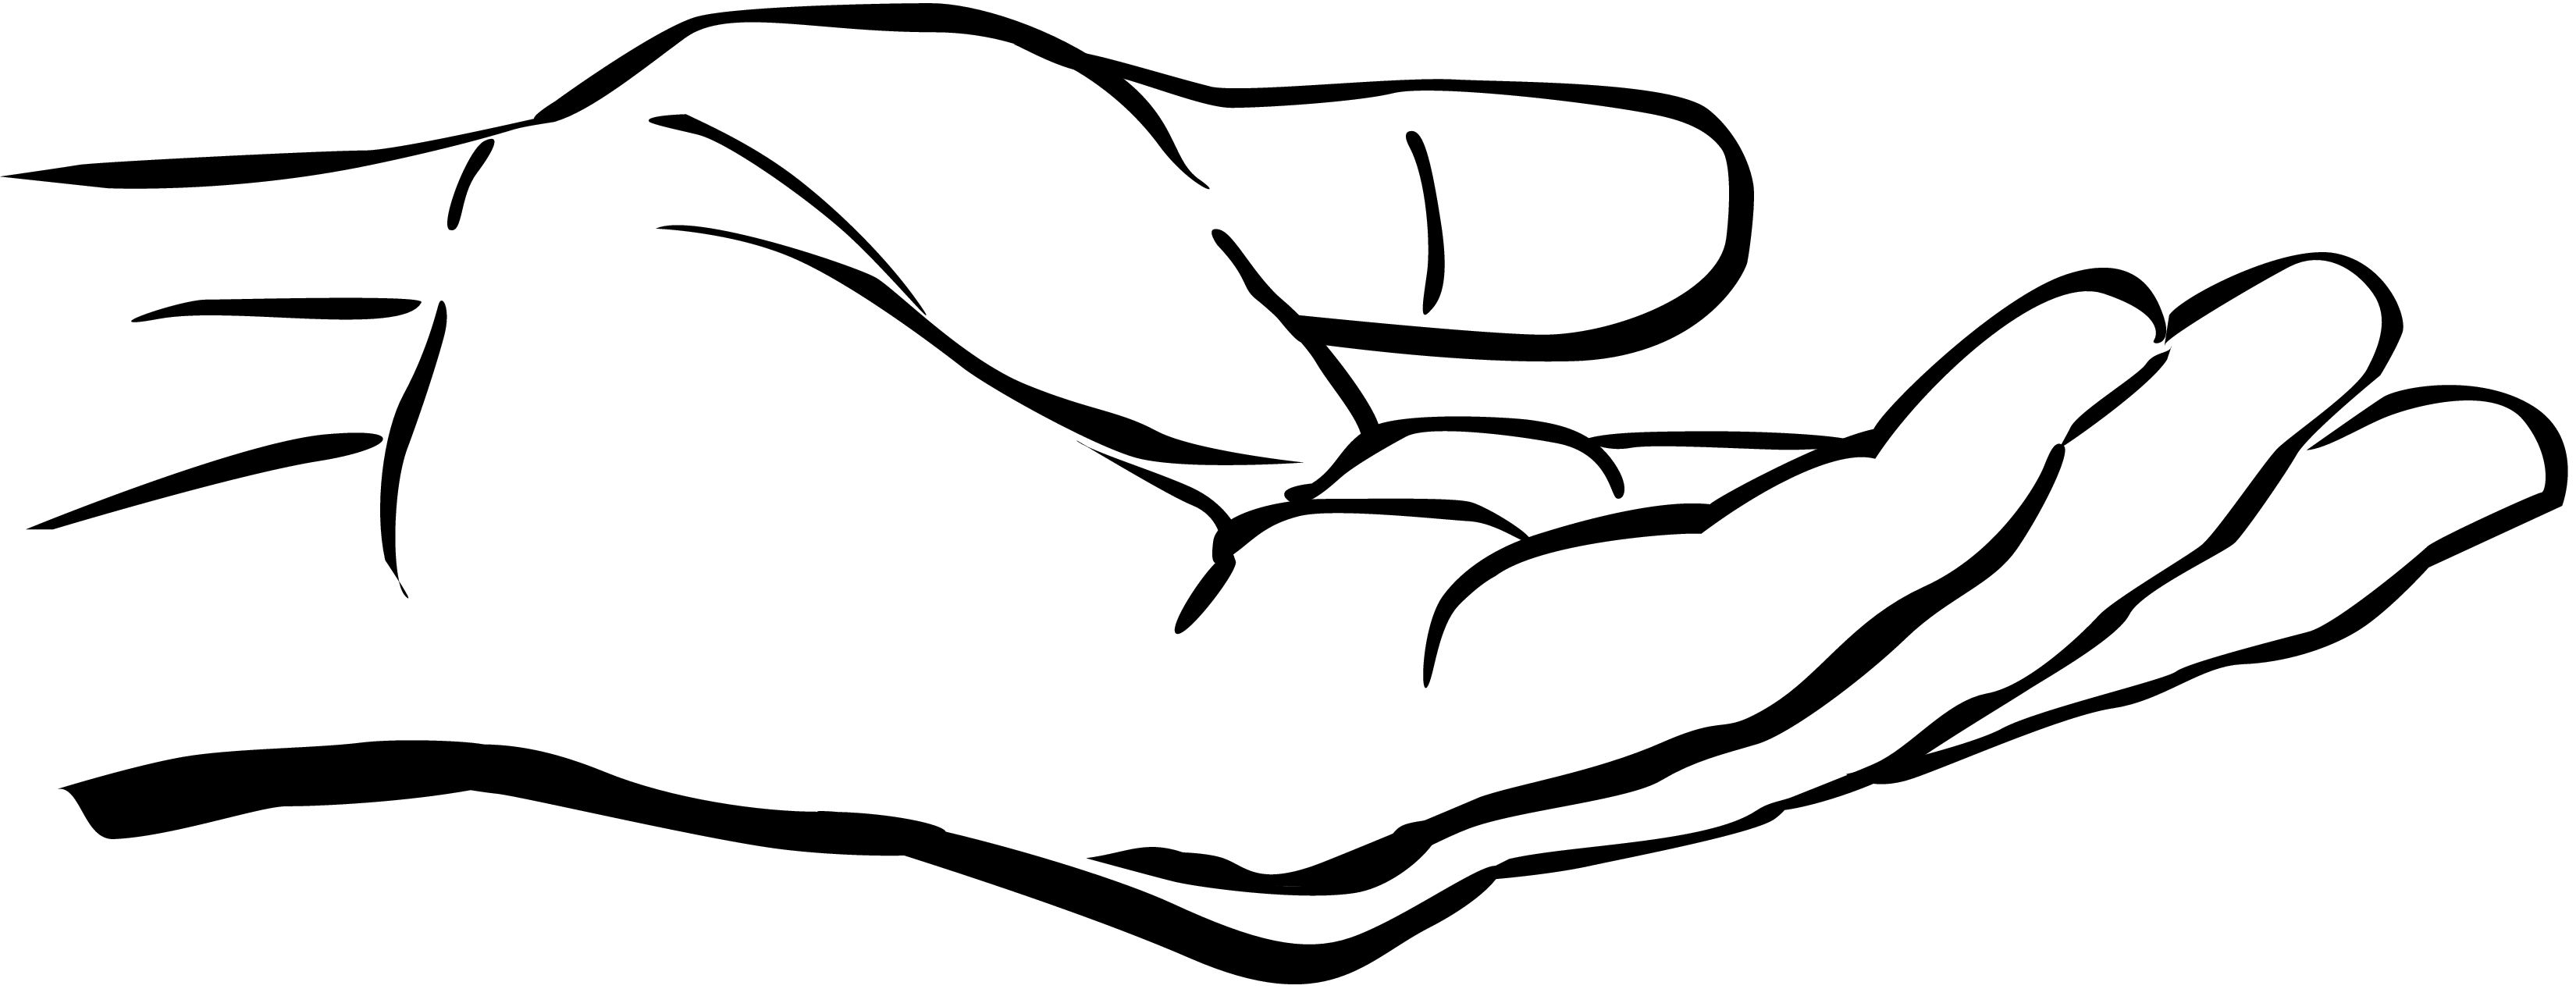 Hands Praying Drawing Free Download Best Hands Praying